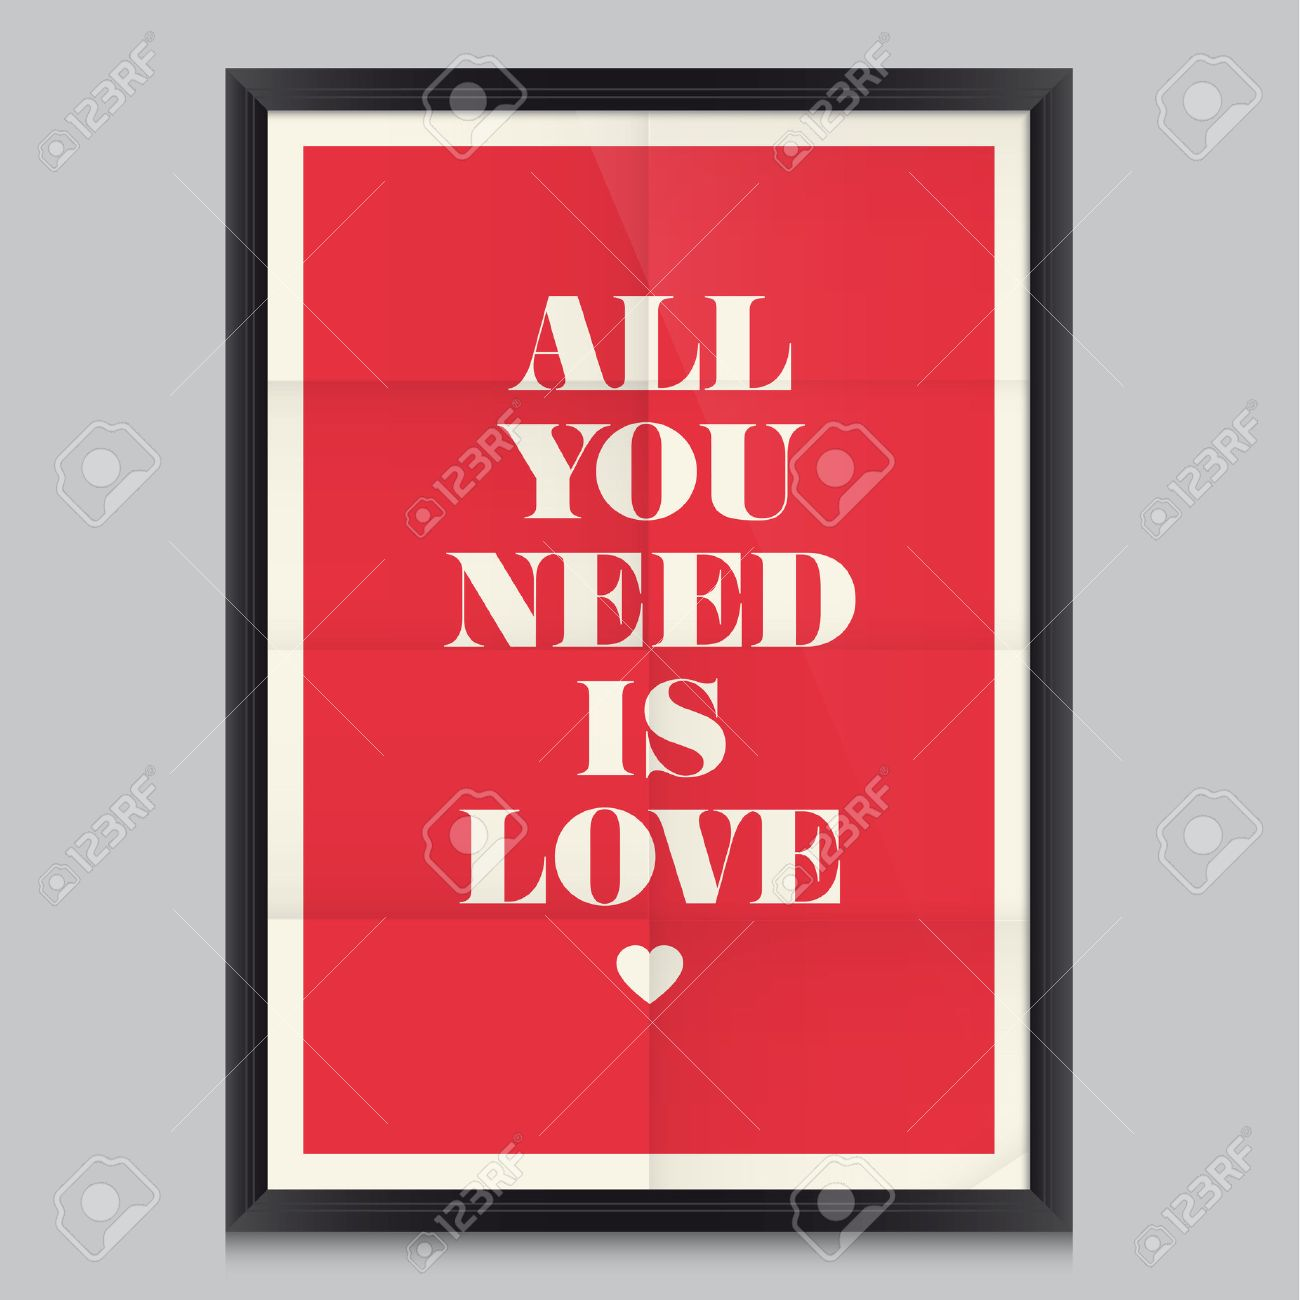 Love Quote Poster Effects Poster, Frame, Colors Background And Colors Text  Are Editable Happy